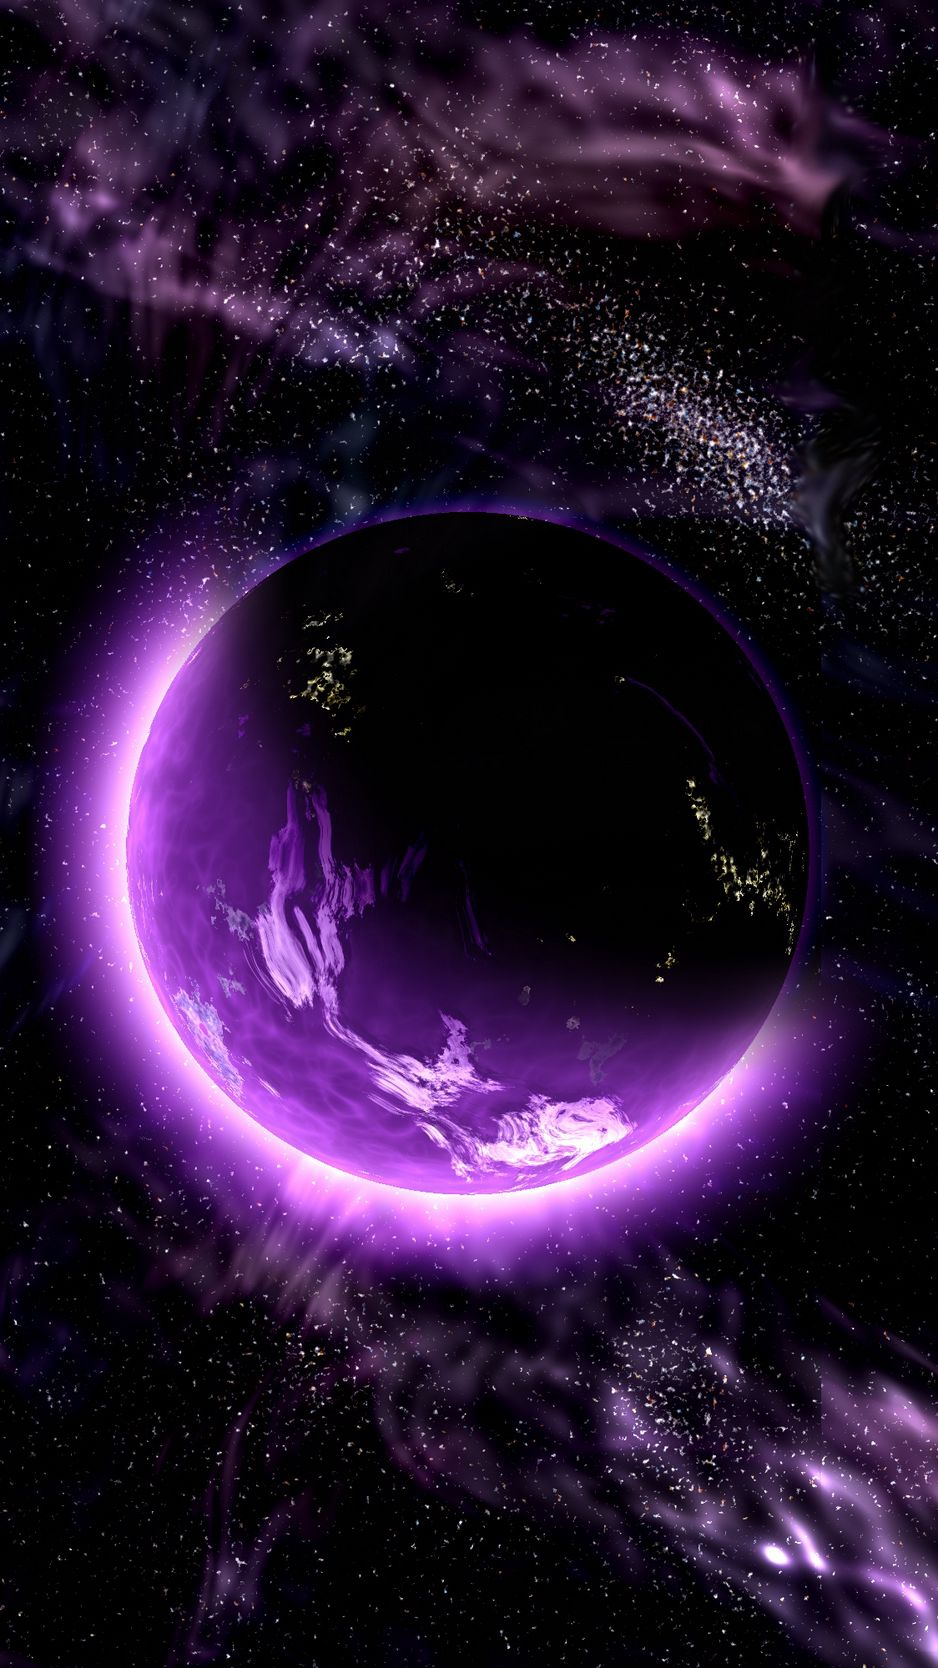 938x1668 Wallpaper planet, space, universe, galaxy, purple